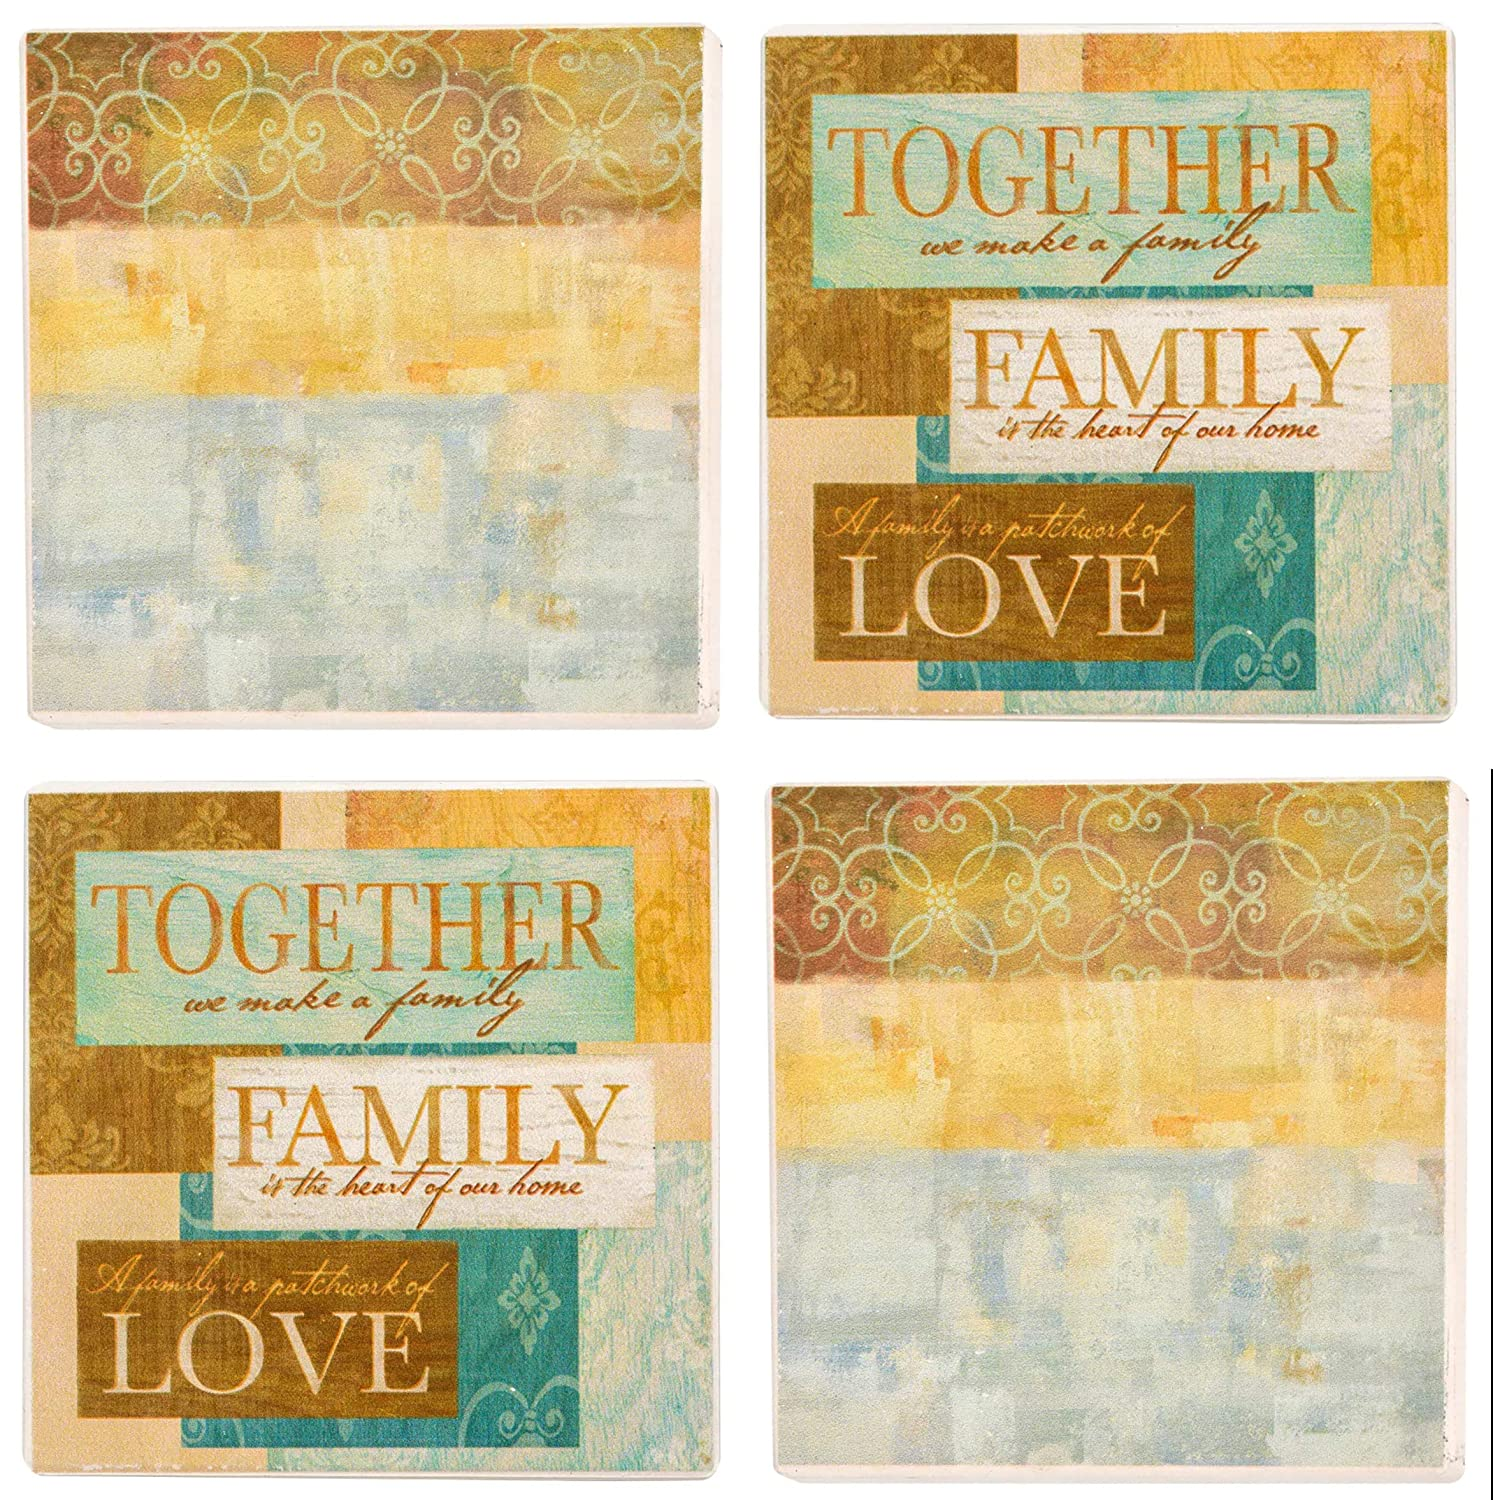 Abstract Family Farmhouse Ceramic Coasters Set of 4 In Gift Box